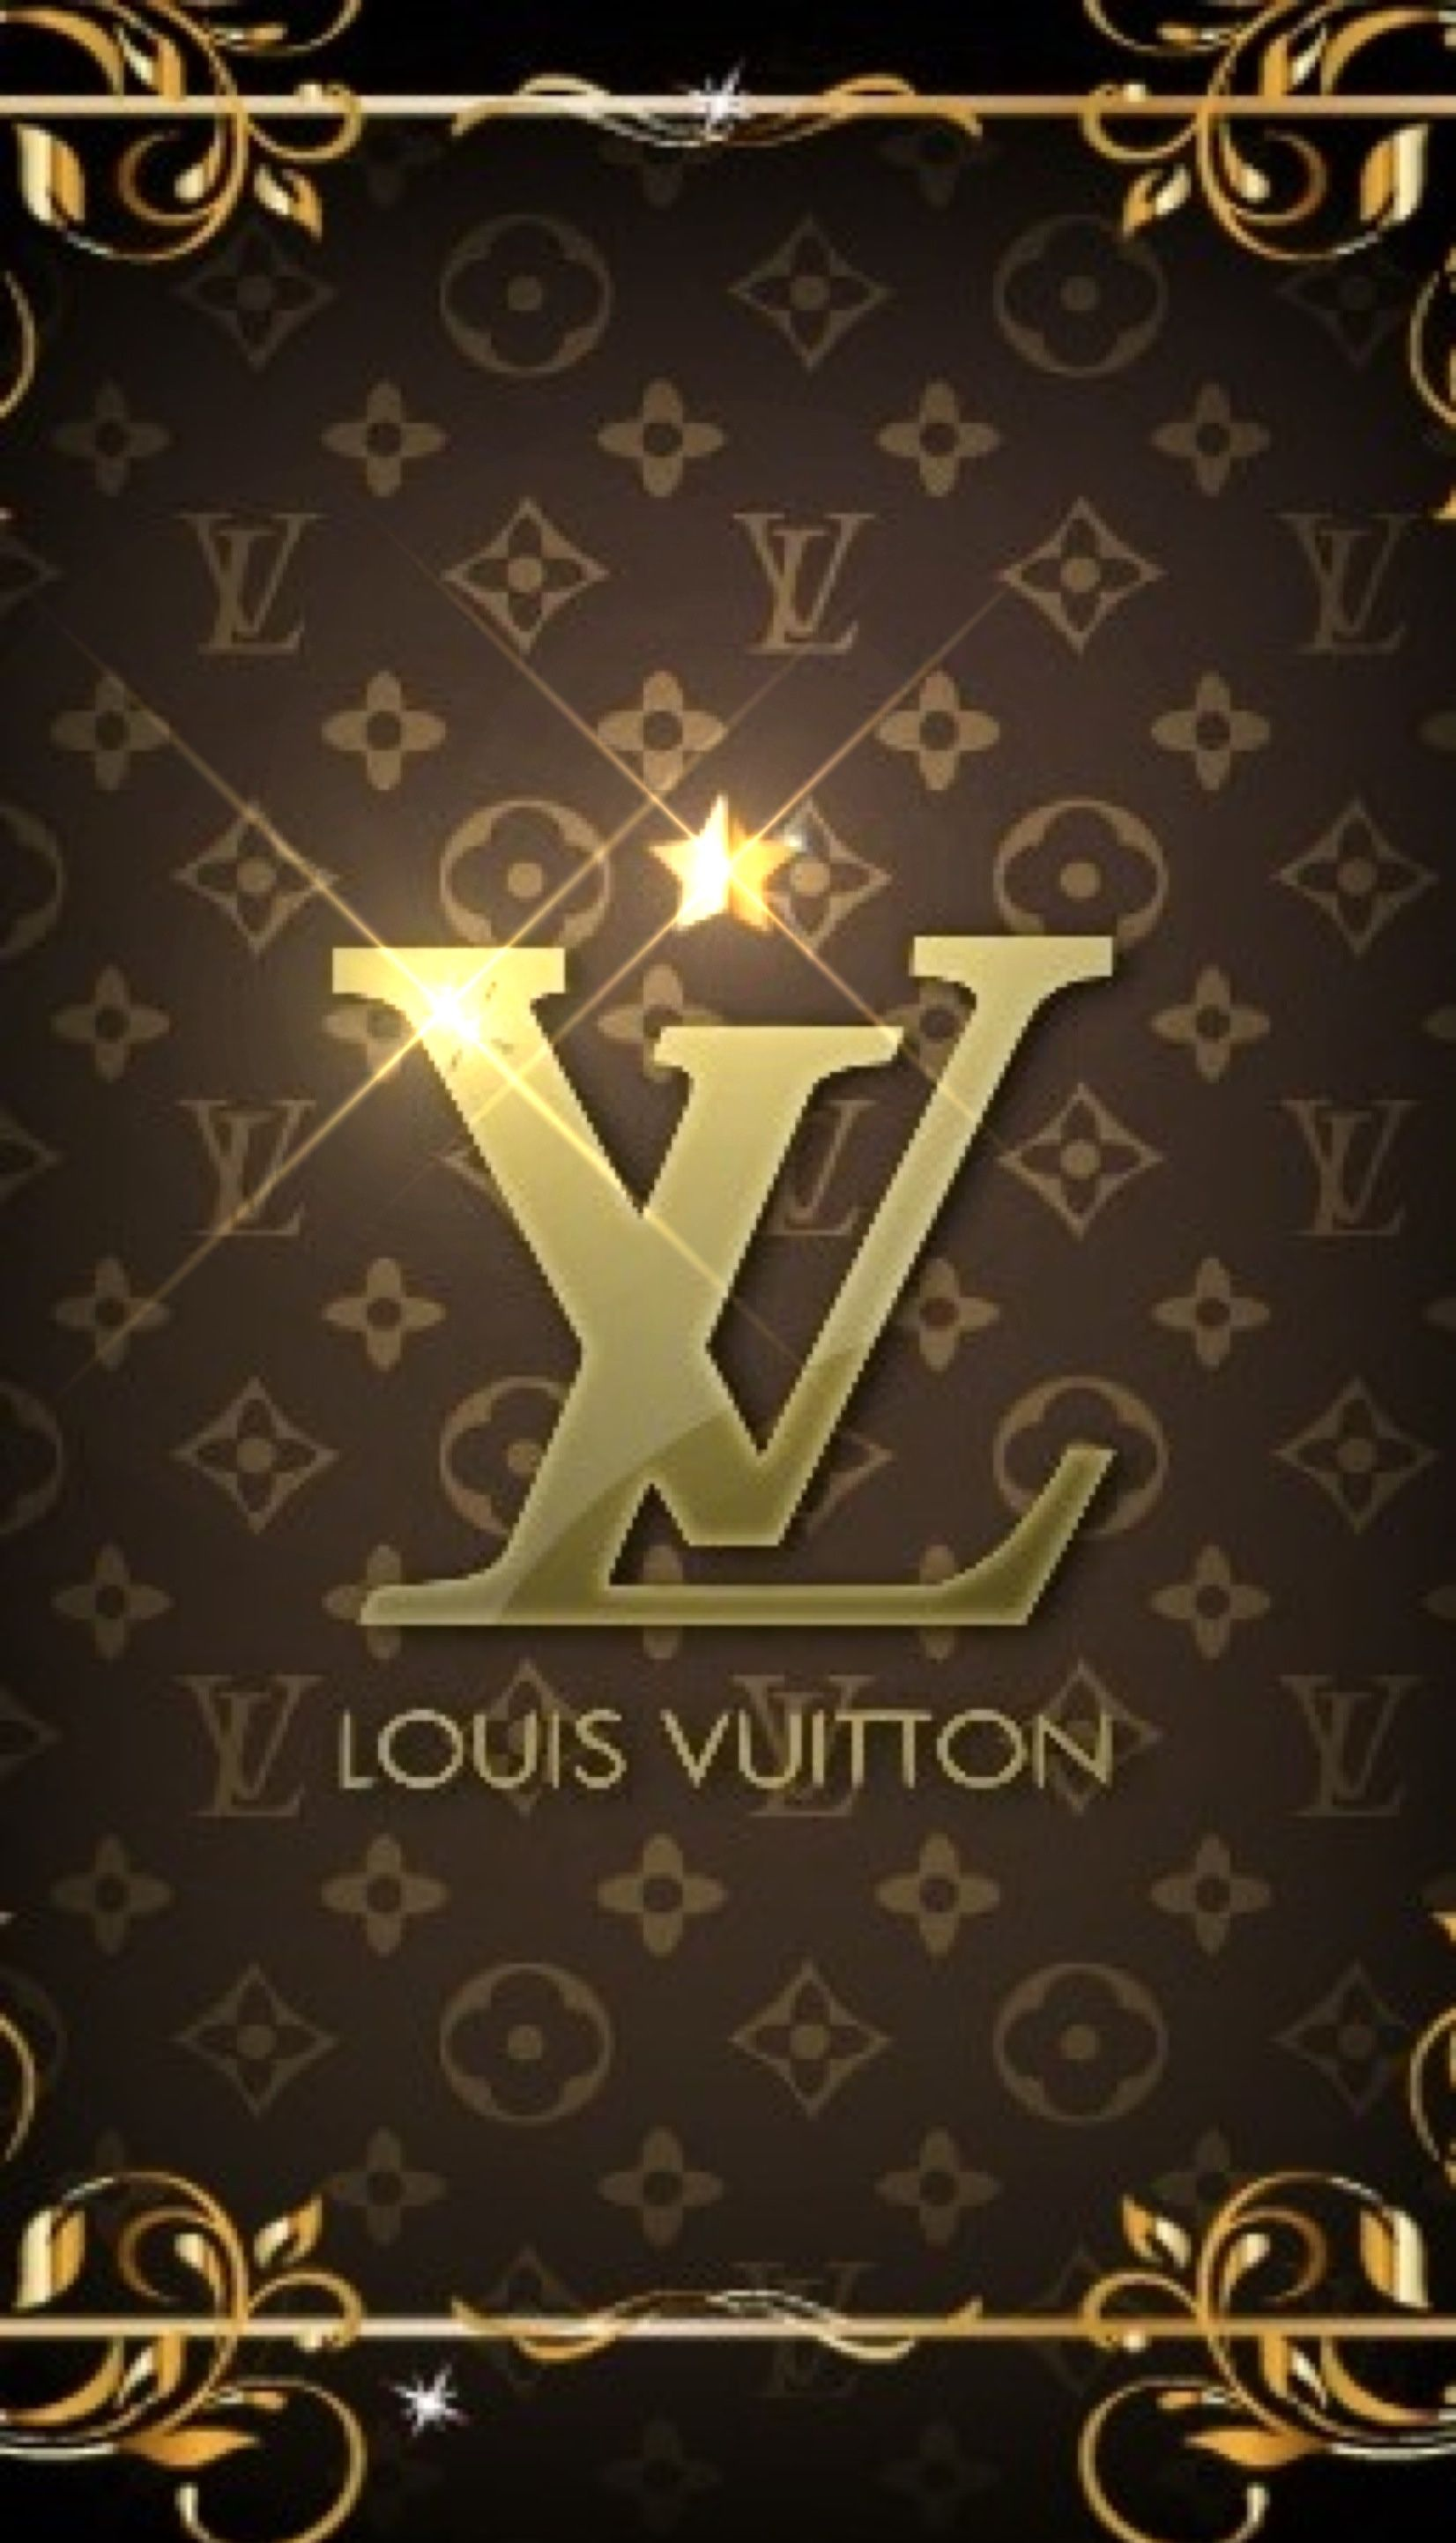 Louis Vuitton - What else is there? Luxurydotcom